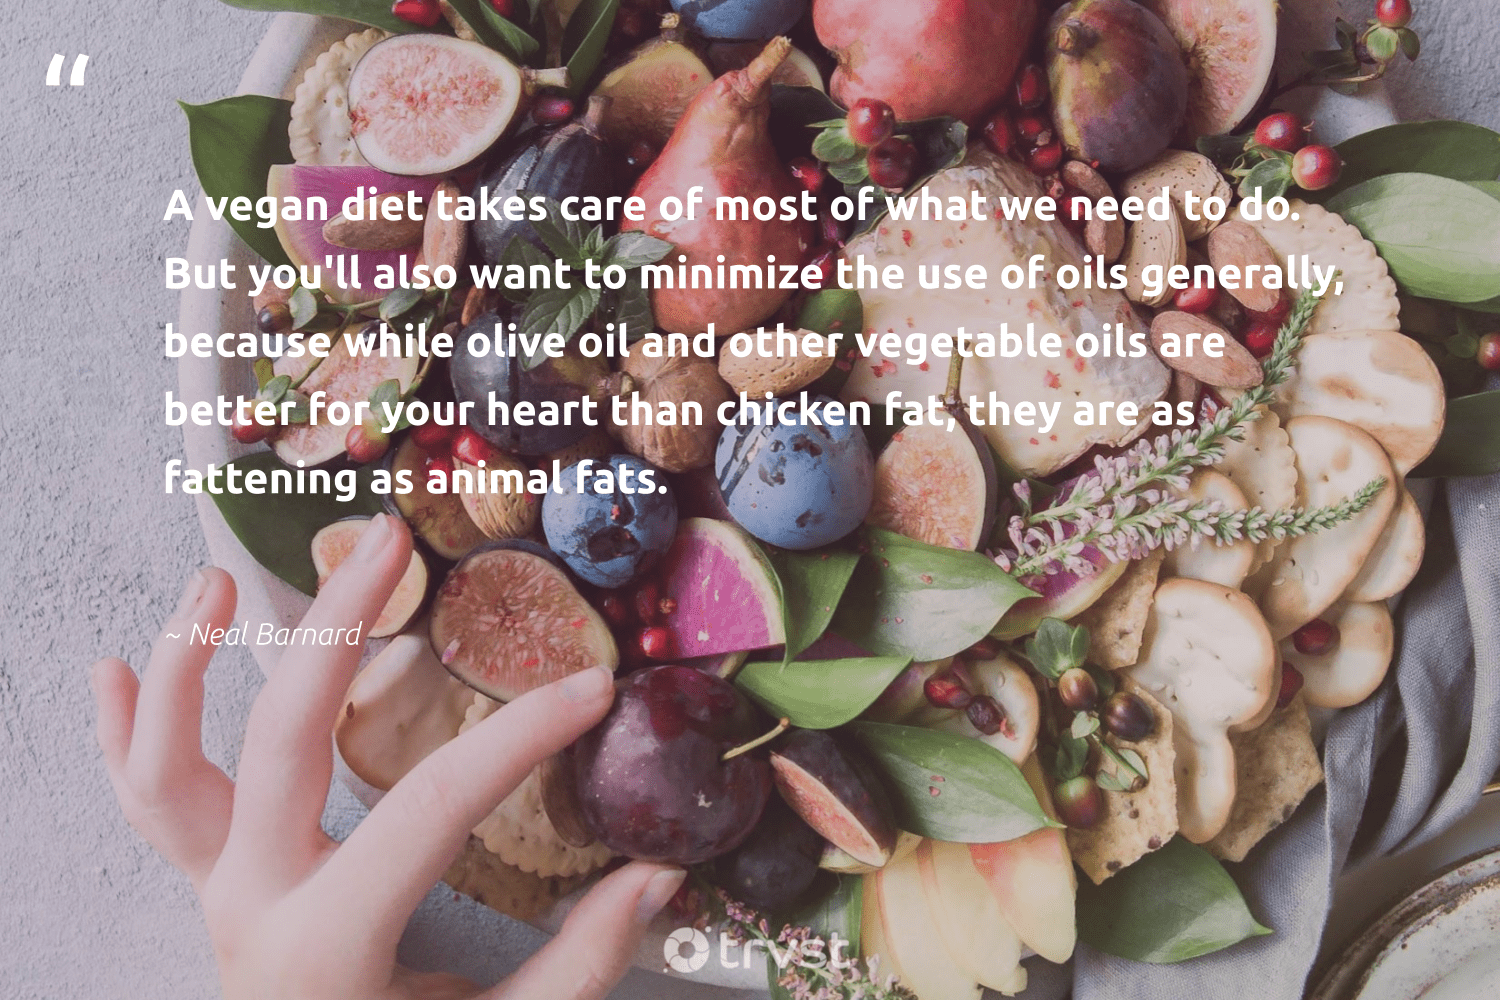 """A vegan diet takes care of most of what we need to do. But you'll also want to minimize the use of oils generally, because while olive oil and other vegetable oils are better for your heart than chicken fat, they are as fattening as animal fats.""  - Neal Barnard #trvst #quotes #oil #animal #vegan #coal #green #climateaction #takeaction #fossilfuels #sustainability #planetearth"